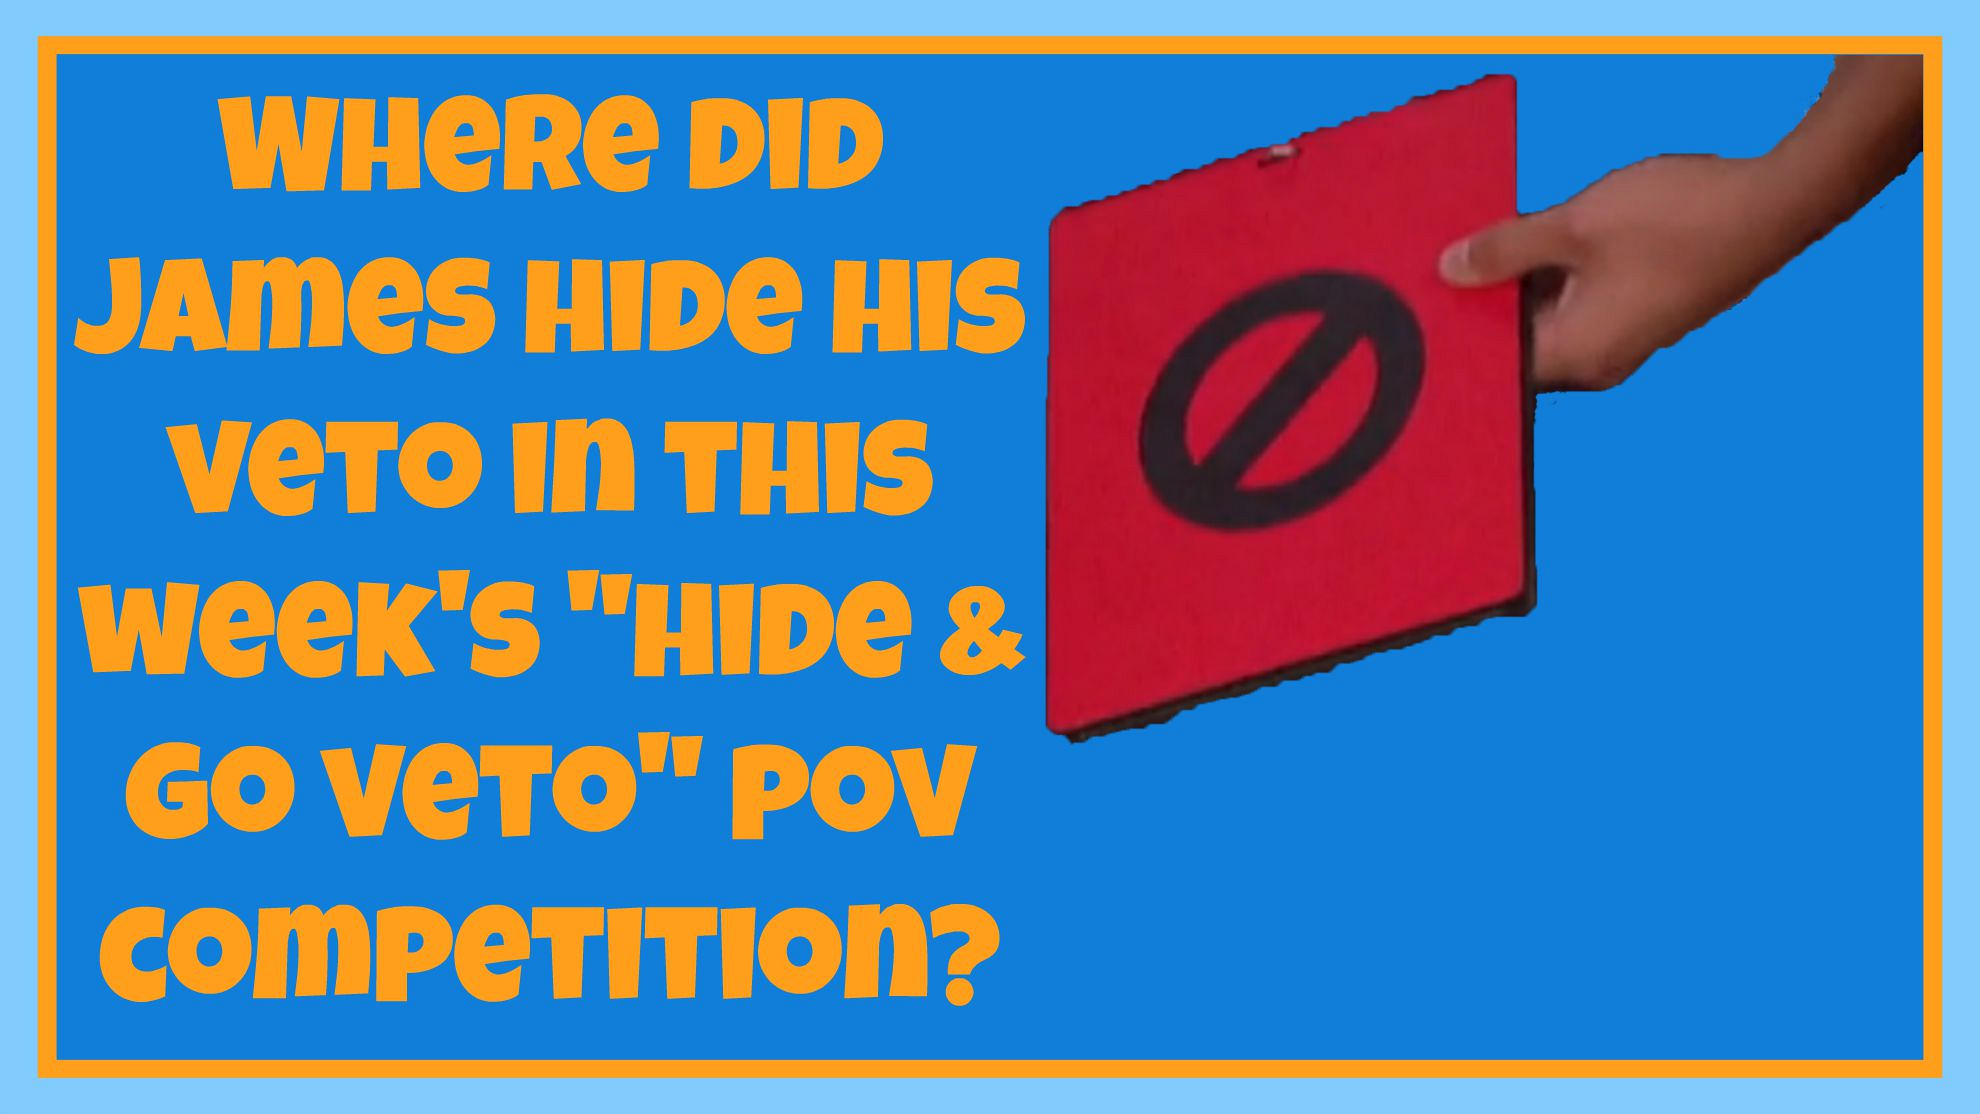 """Where did James hide his Veto in this week's """"Hide & Go Veto"""" POV competition?"""